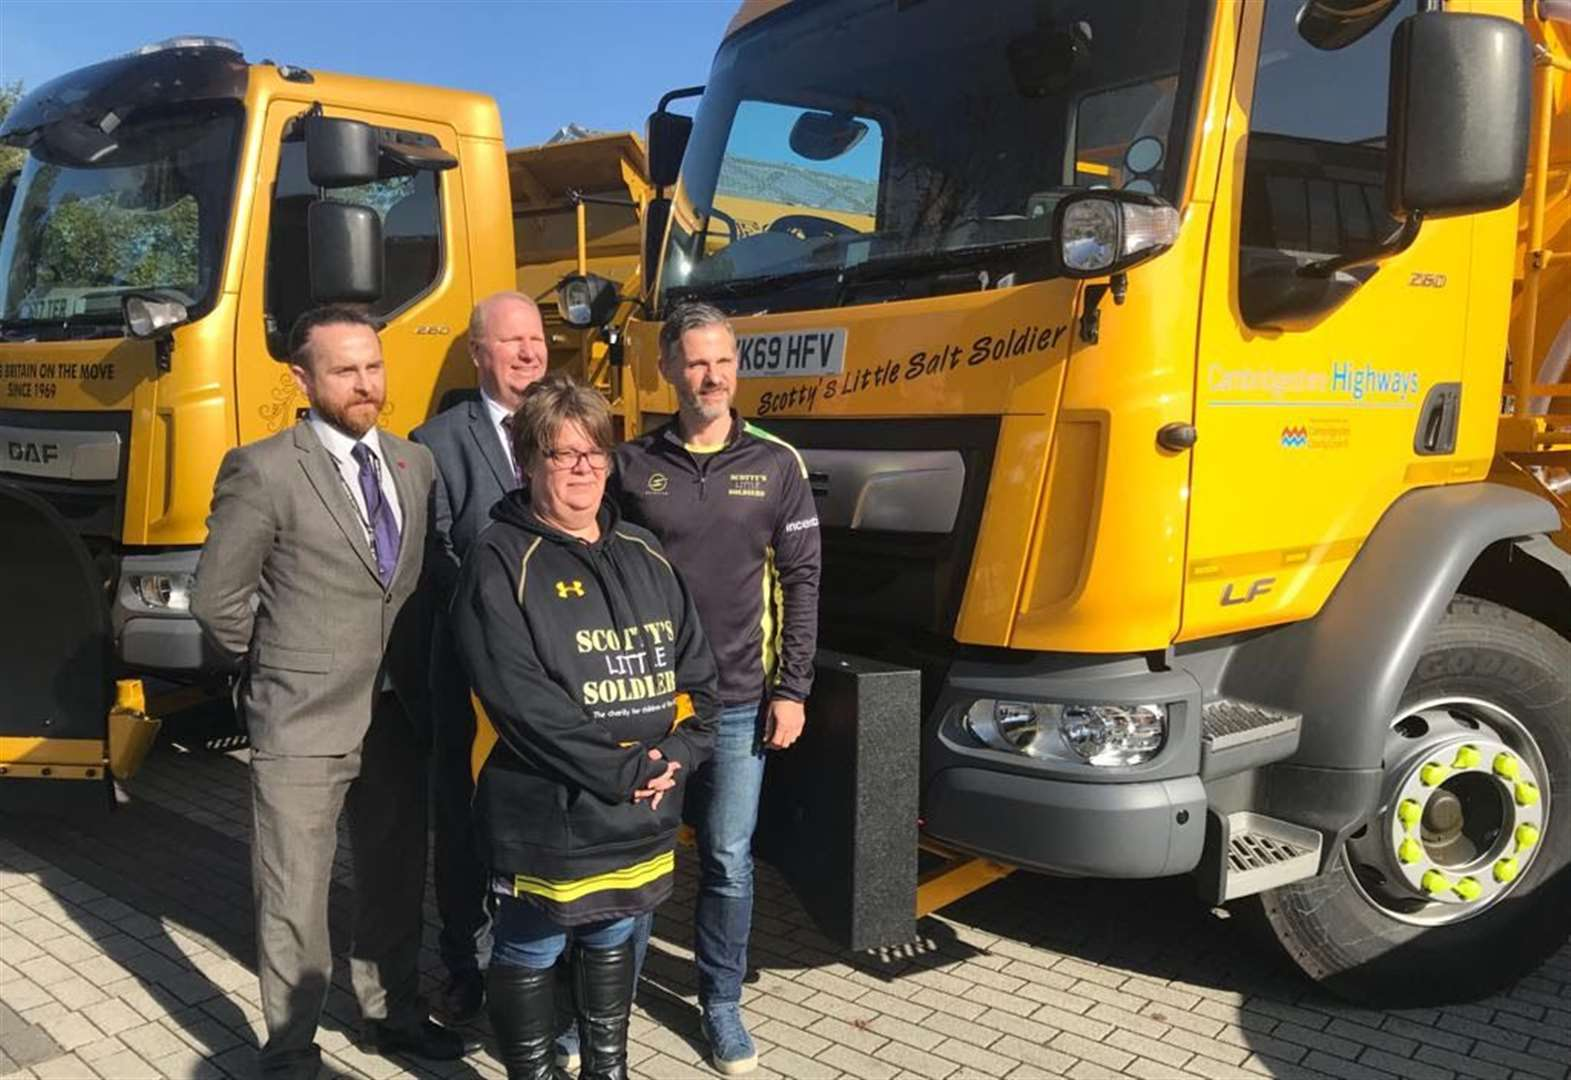 'Scotty's Little Salt Soldier' named after former March school student will be keeping Cambridgeshire's roads ice free this winter